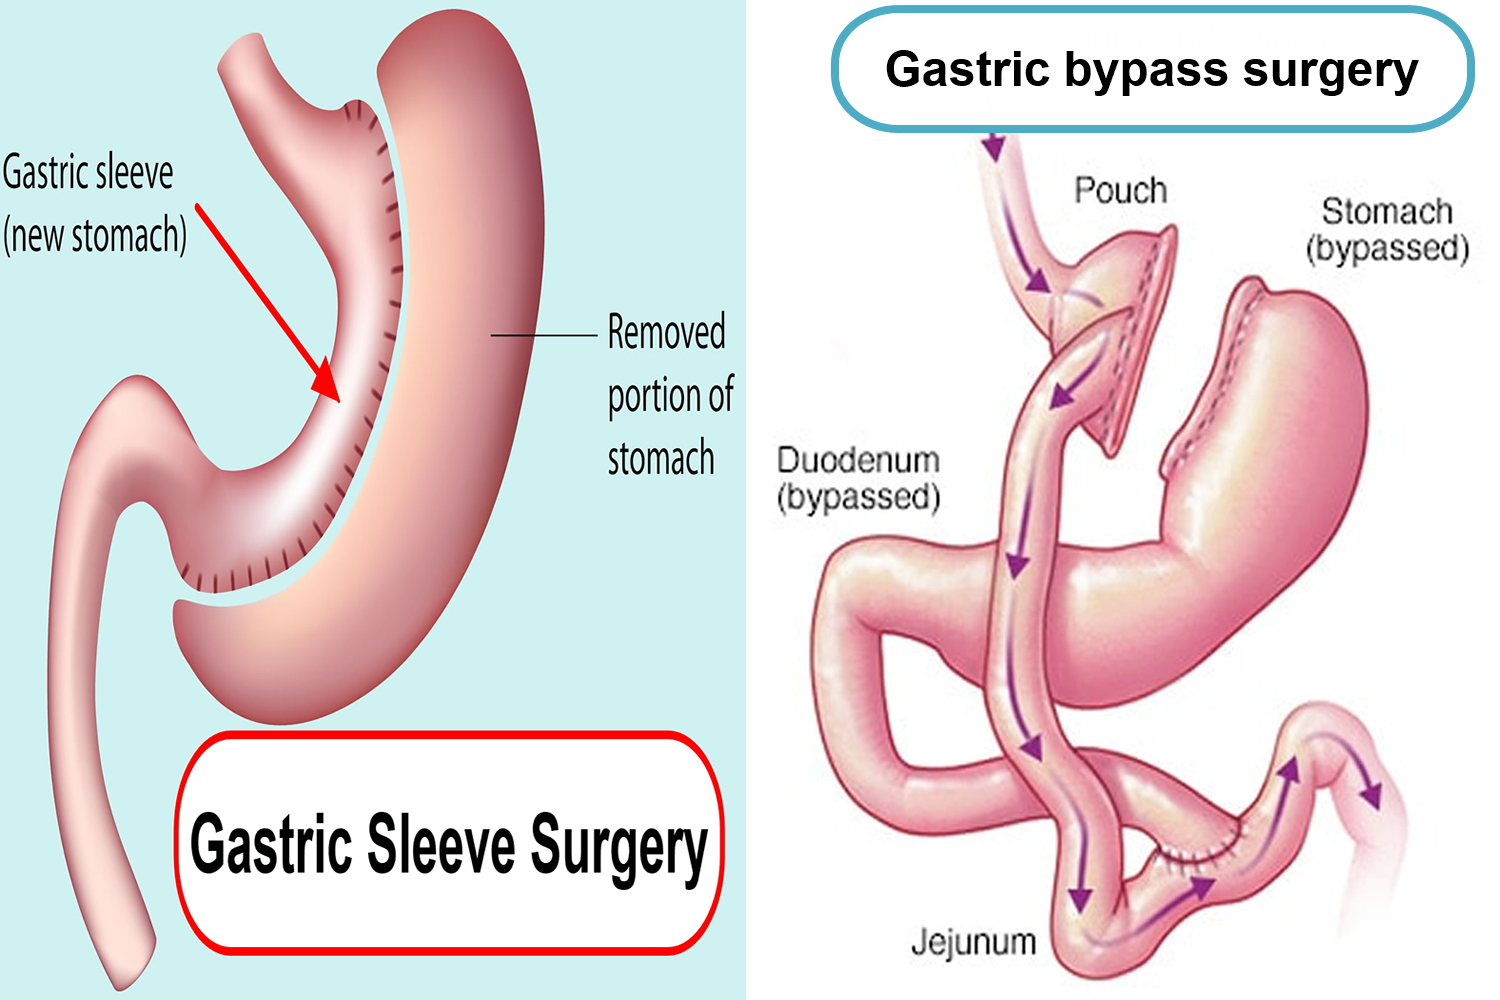 gastric bypass vs sleeve Choose between a gastric sleeve and gastric bypass call colorado bariatric surgery institute today while there have been many bariatric procedures that have evolved over time, the roux-en-y gastric bypass and the gastric sleeve seem to have withstood the test of time.